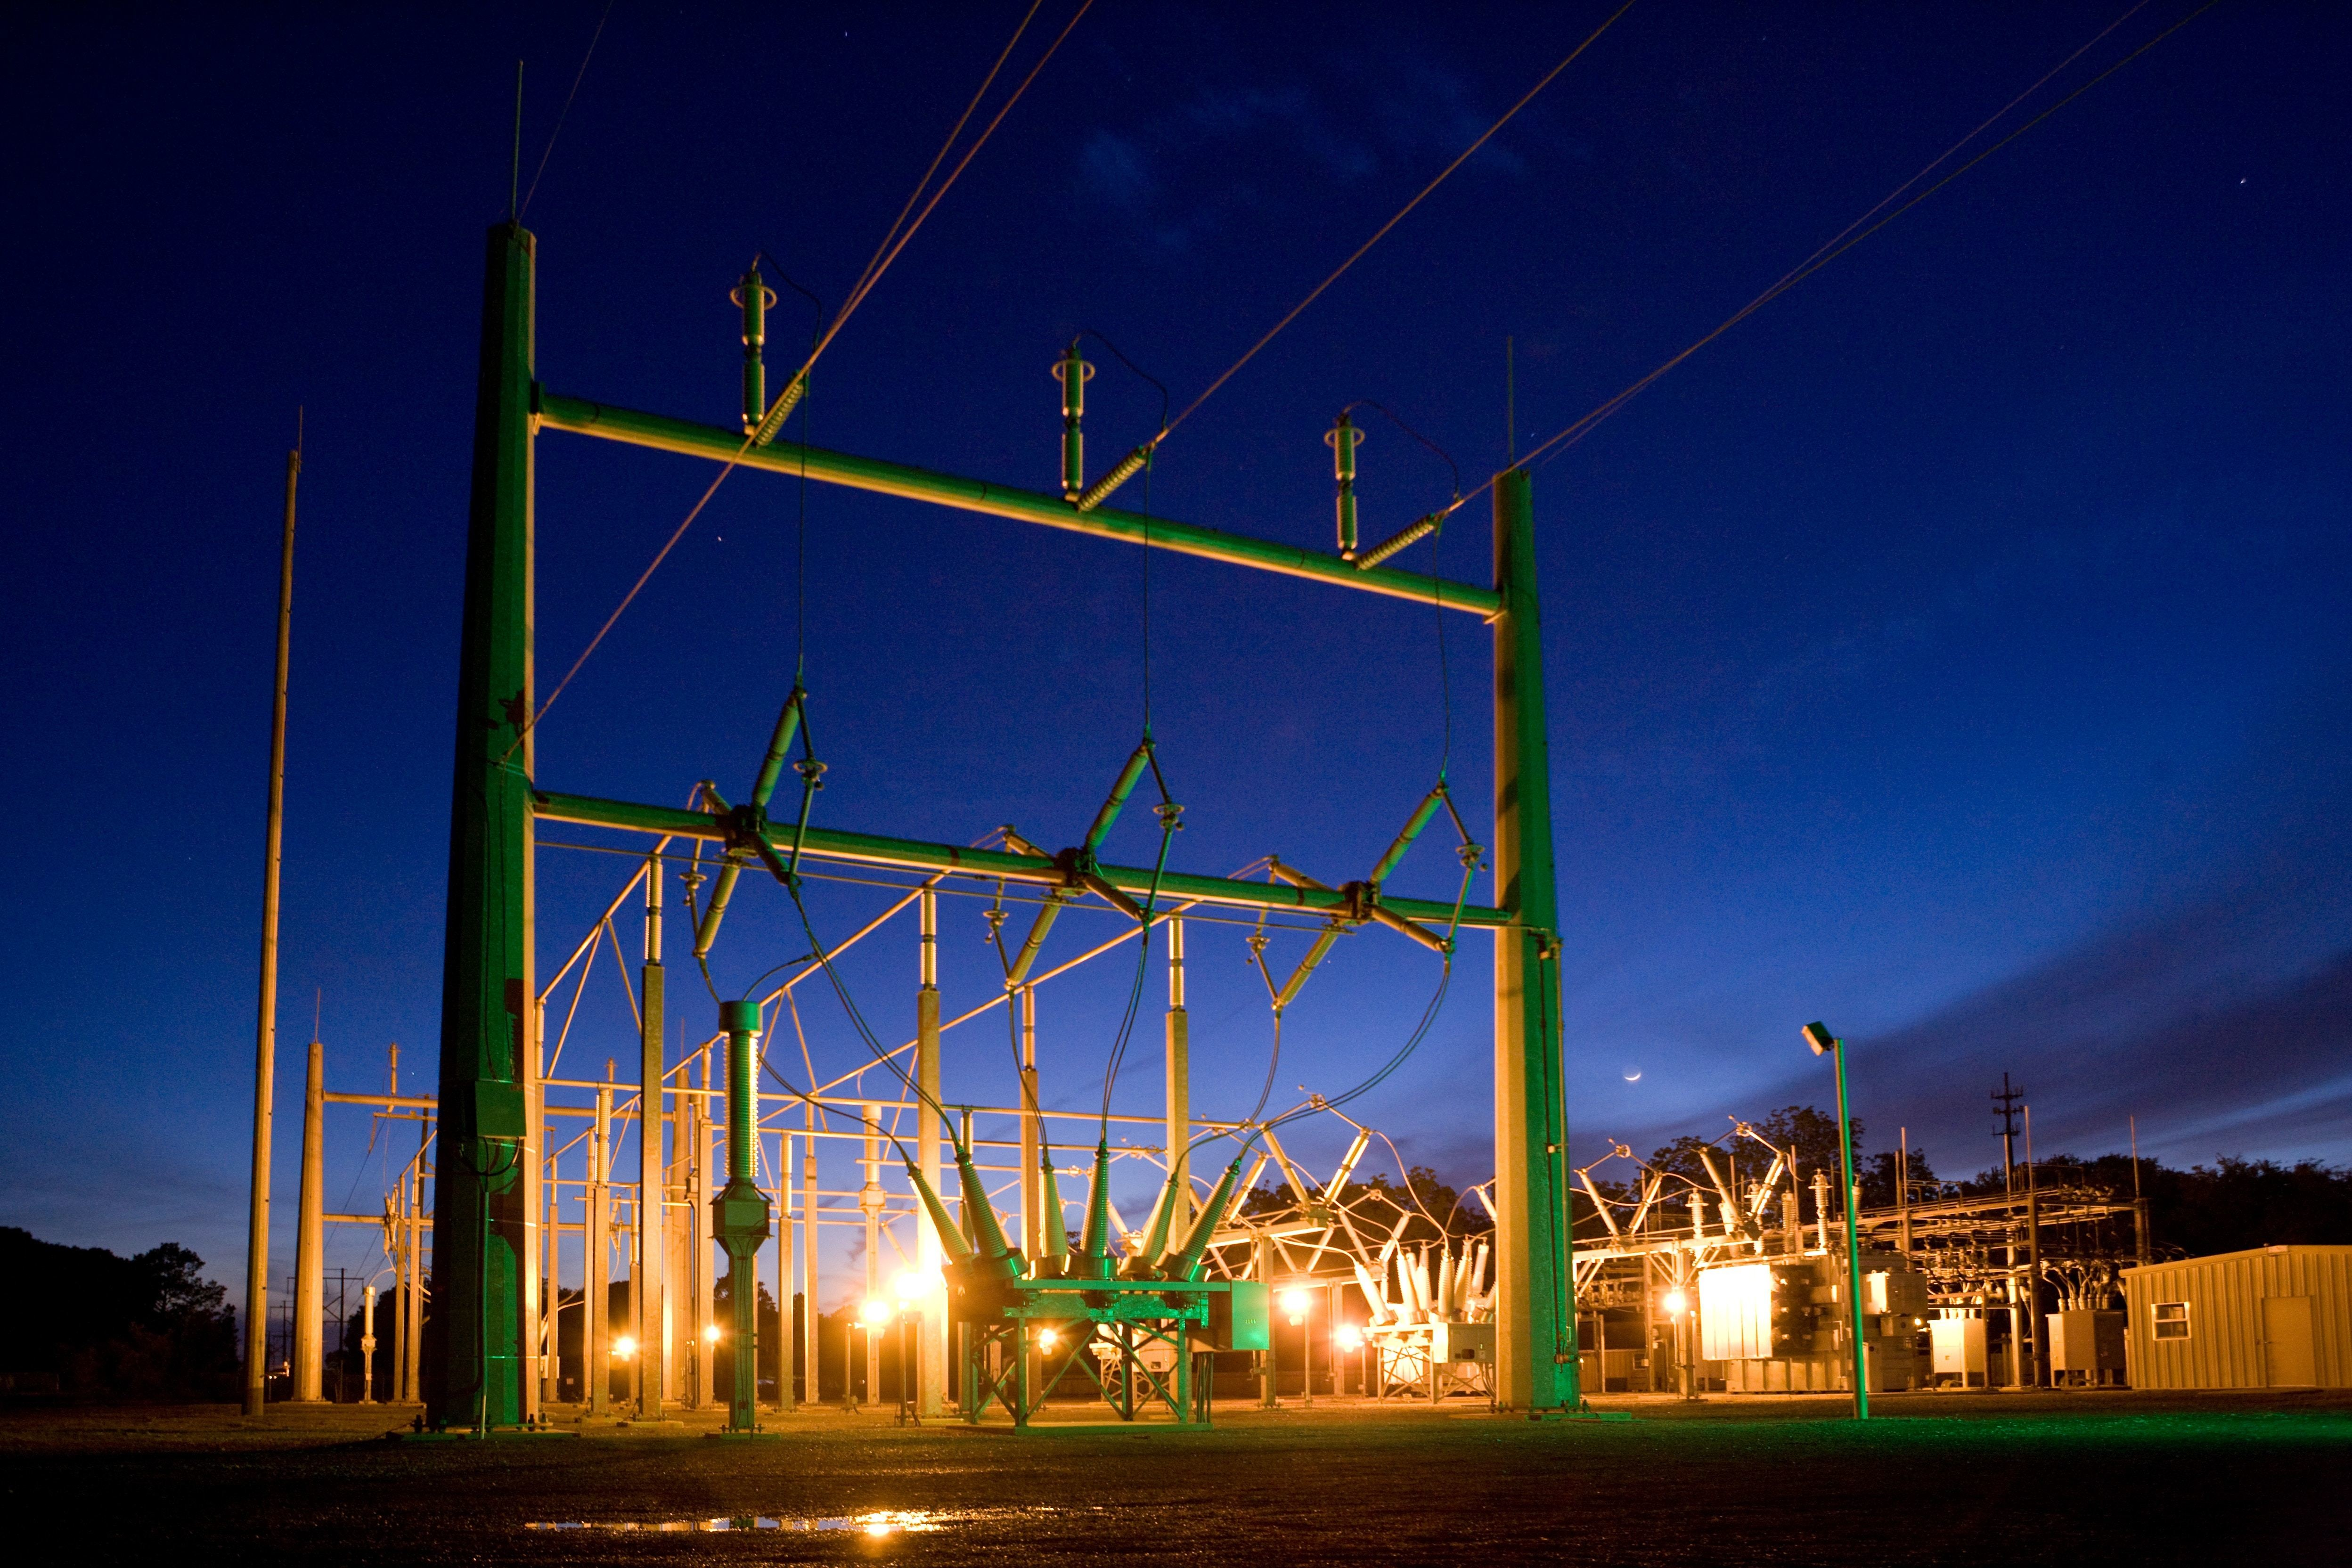 Superconductors have the potential to transform our energy networks.